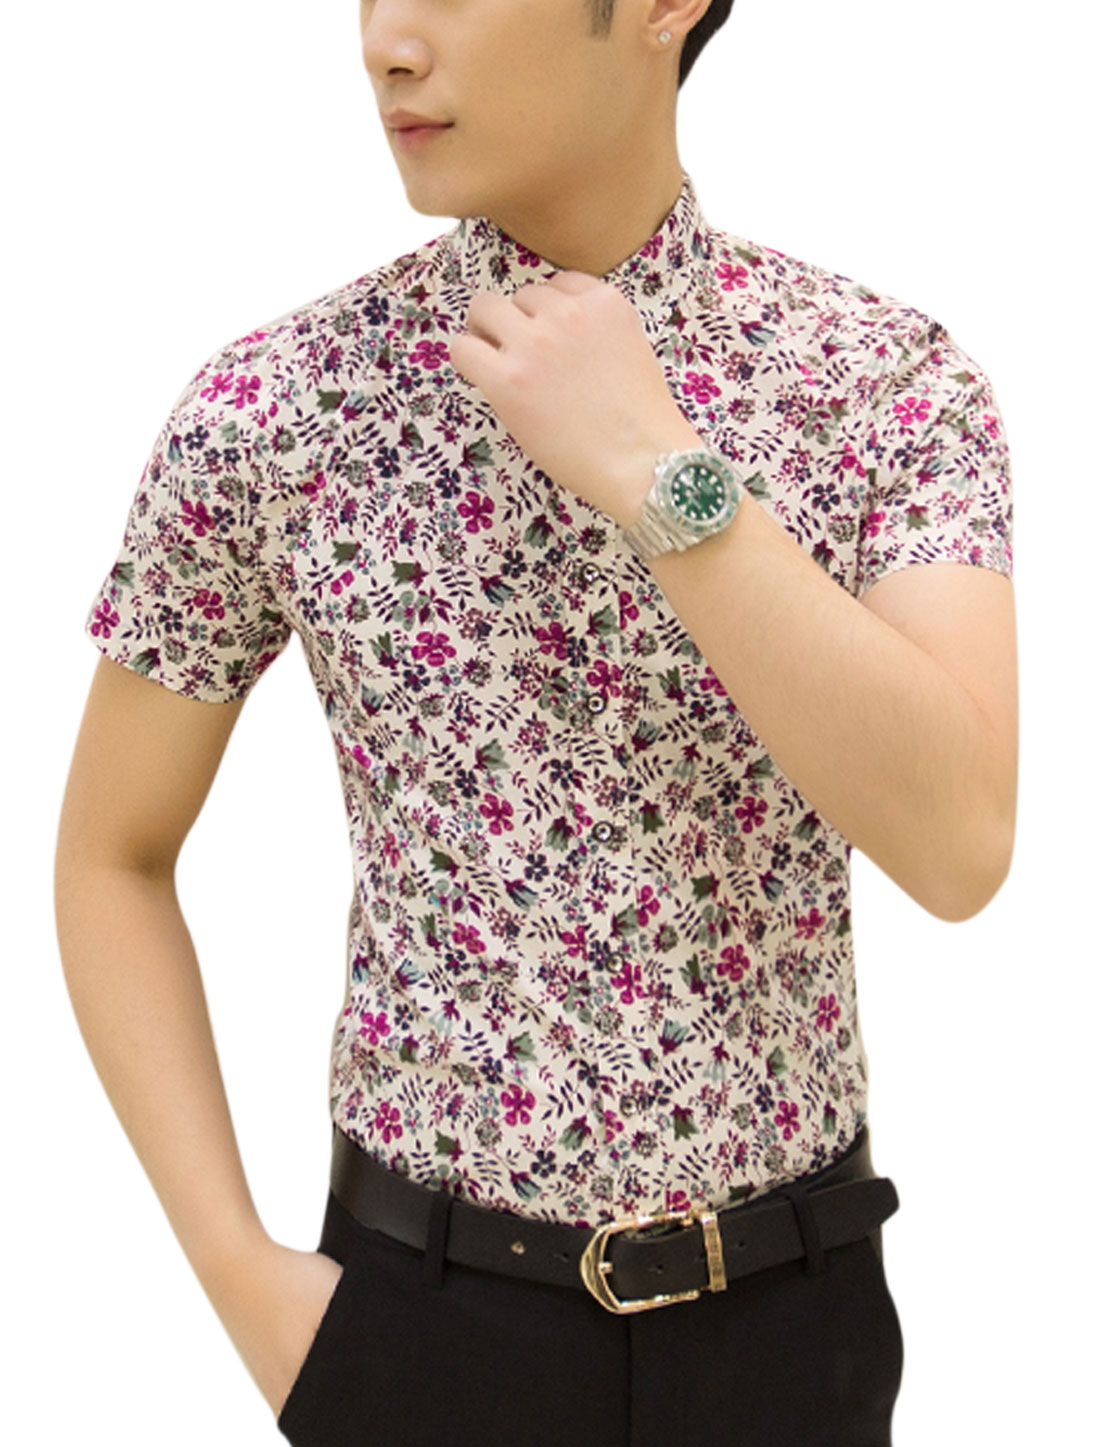 Man Point Collar Short Sleeves Floral Printed Casual Shirts Purple White M